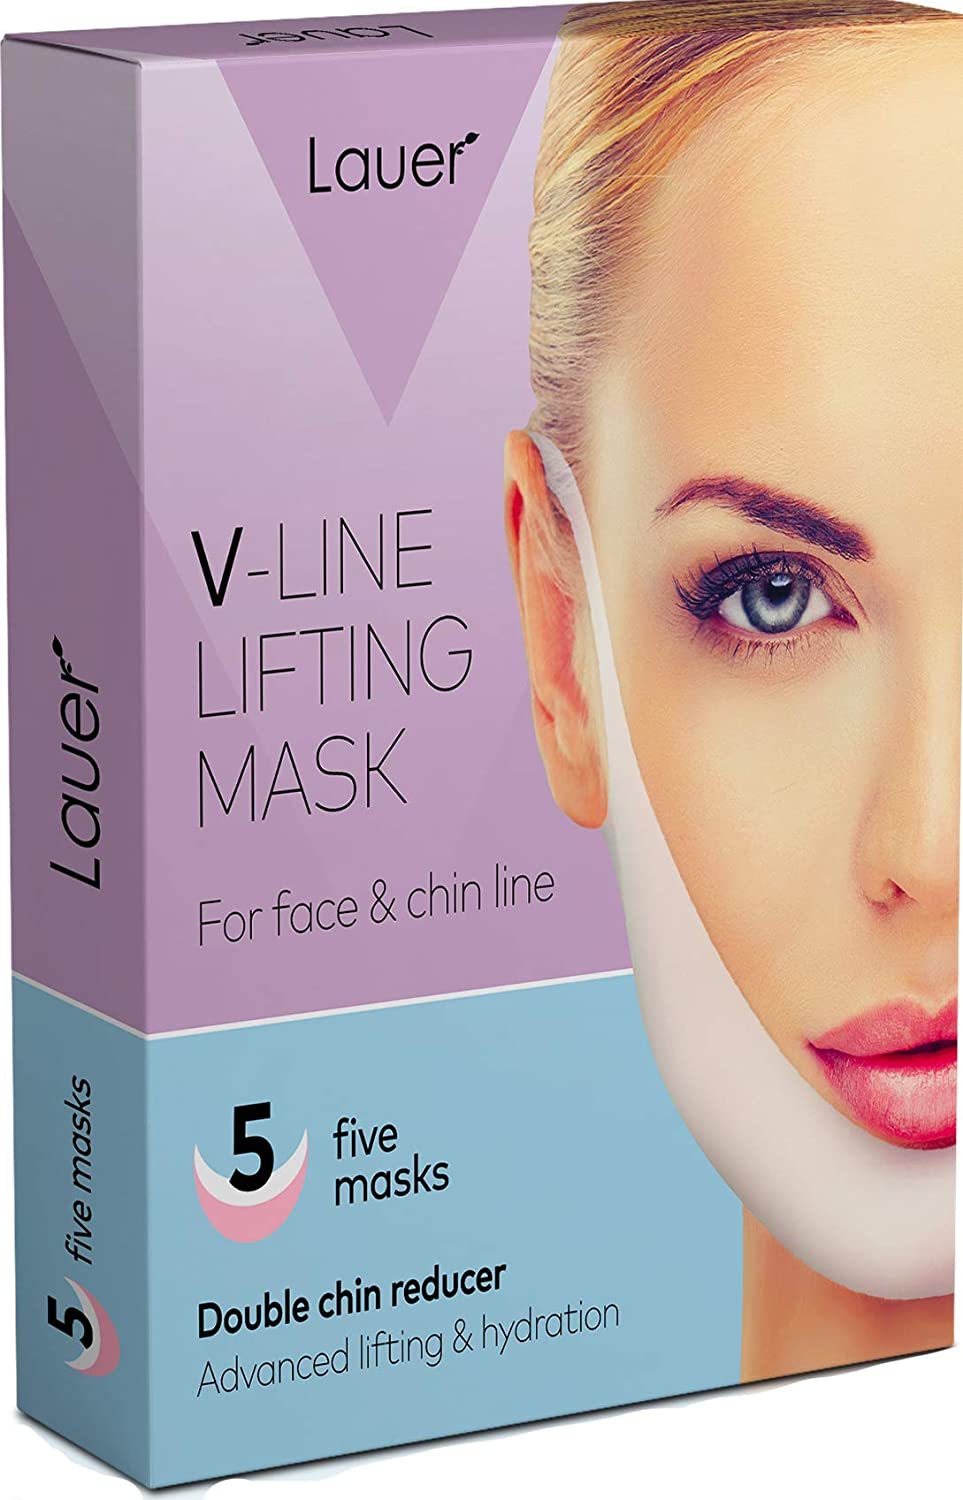 V Shaped Slimming Face Mask Double Chin Reducer V Line Lifting Mask Neck Lift Tape Face Slimmer Patch For Firming and Tightening Skin : Beauty